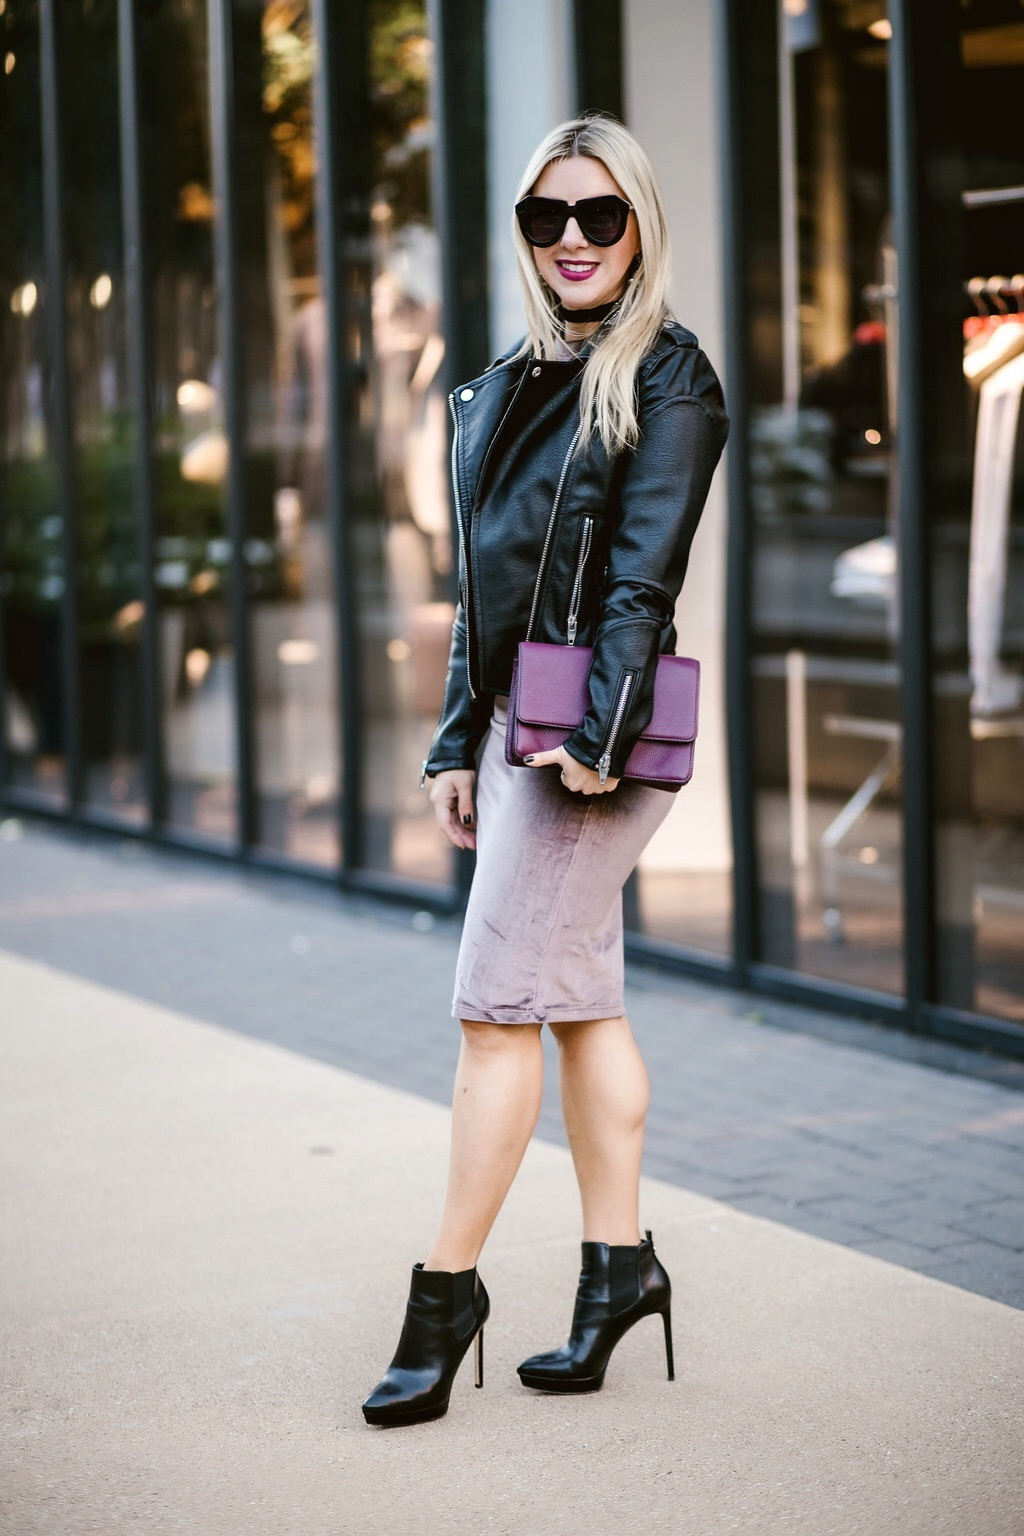 Winter Fashion | Dallas |